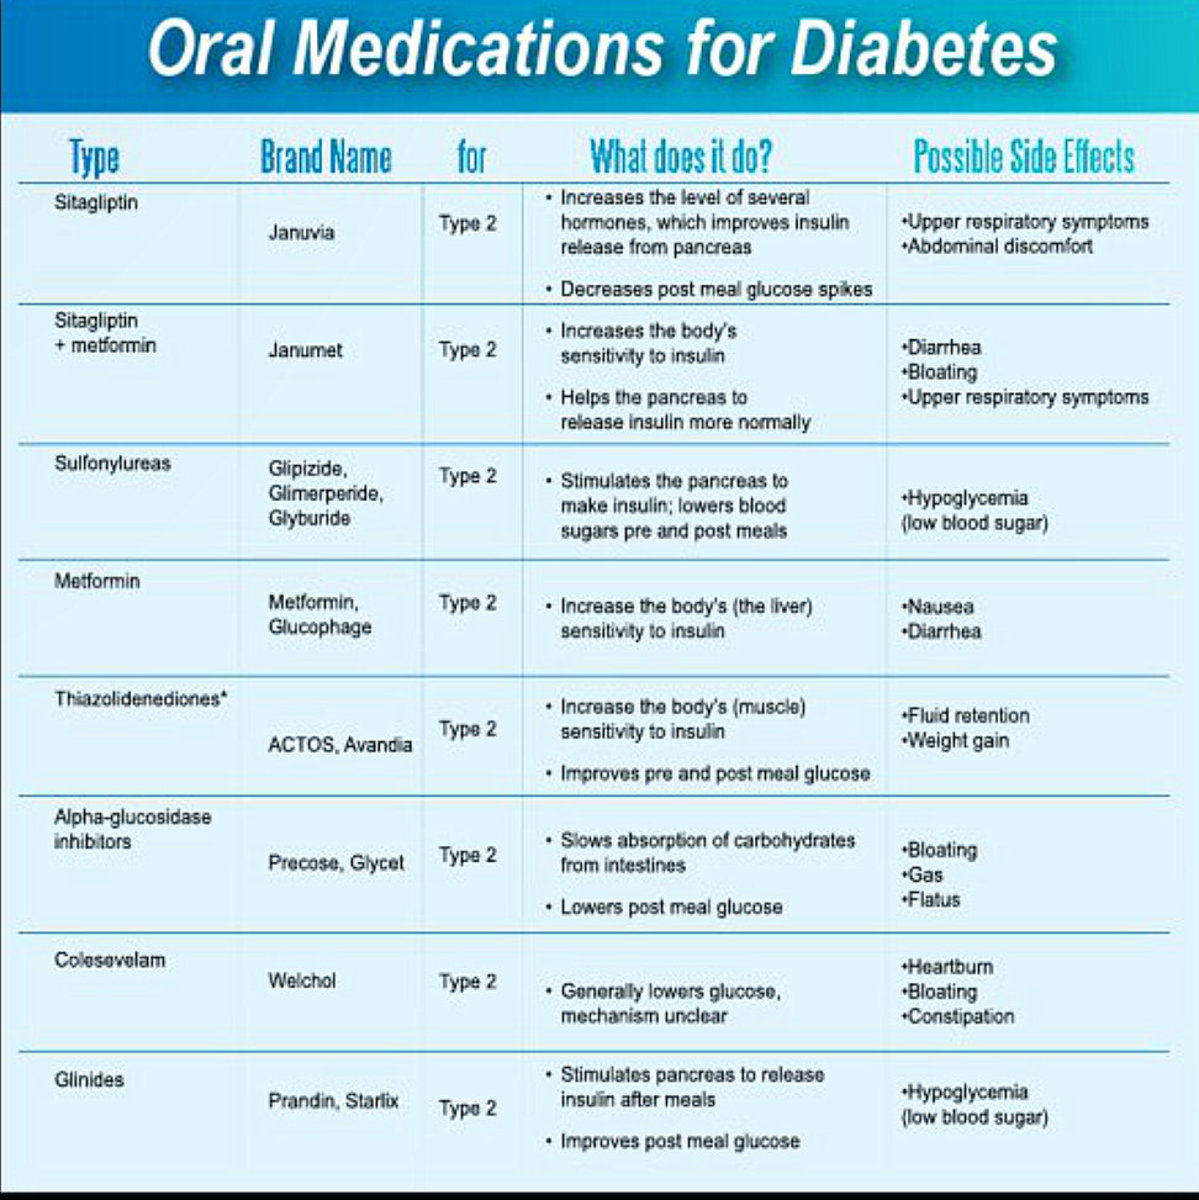 Another photo showing oral medications for Type 2 Diabetes and their side effects.